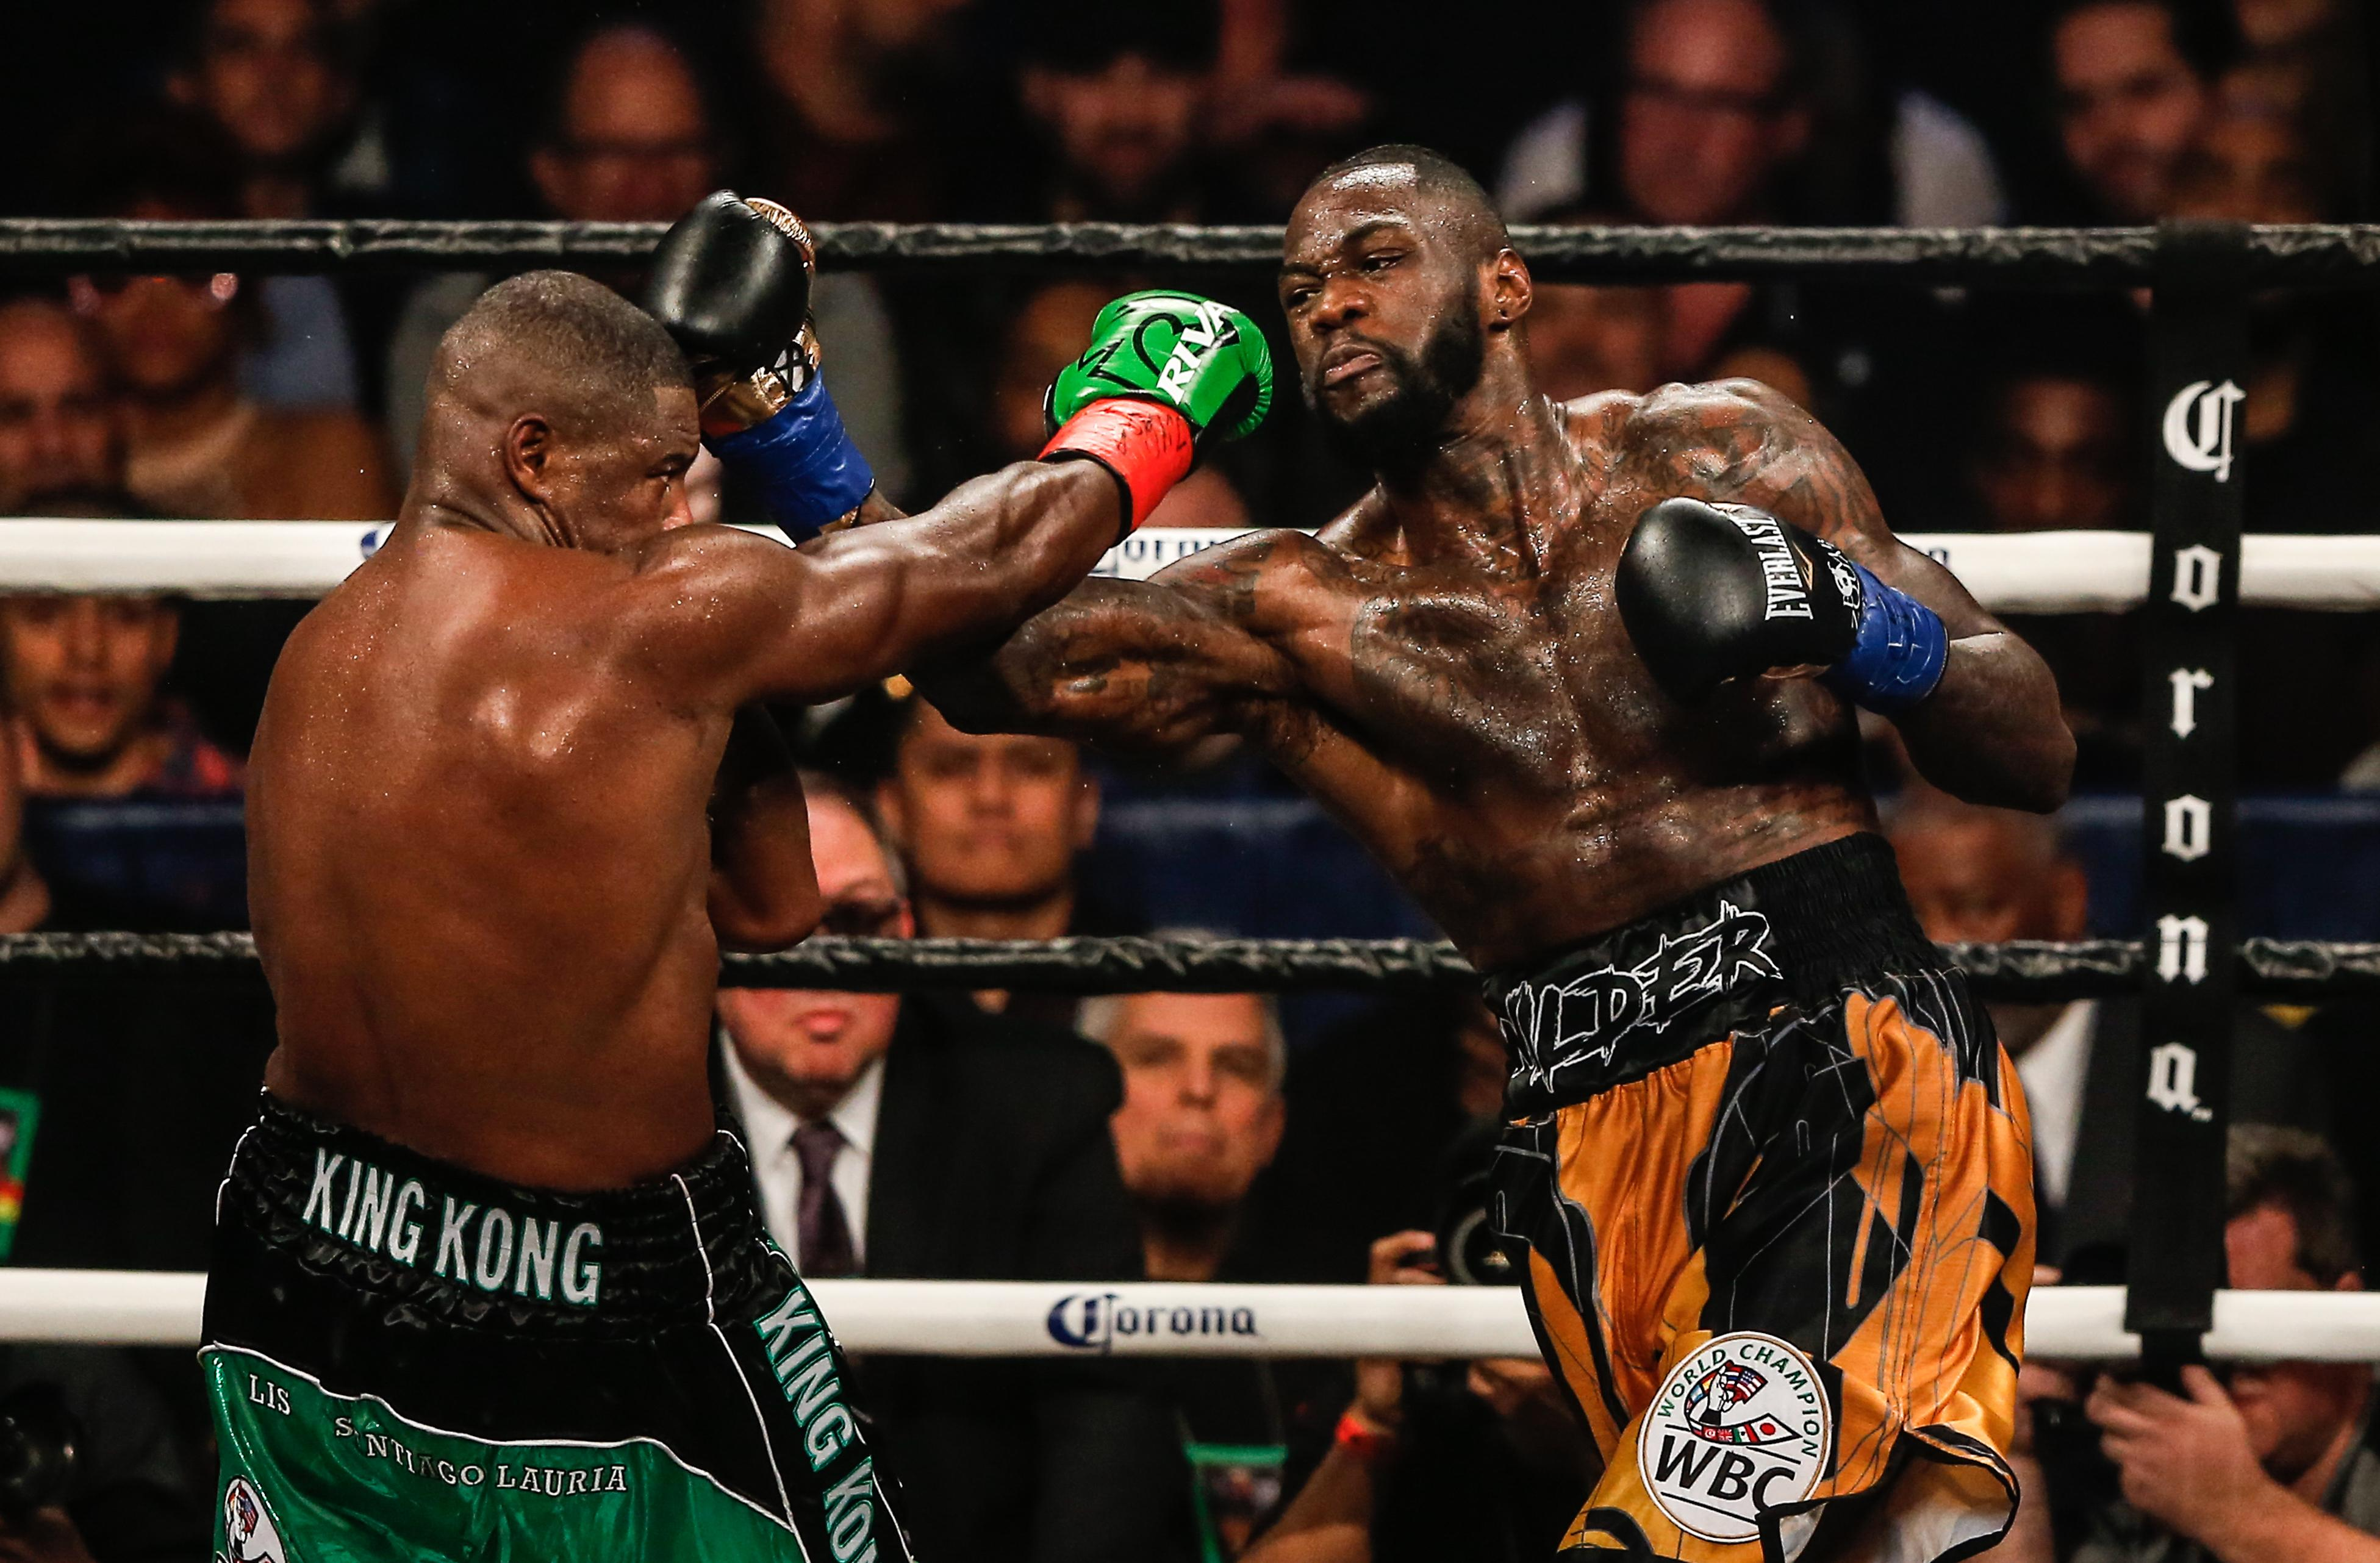 Deontay Wilder has fearsome power - and one man knows all about that